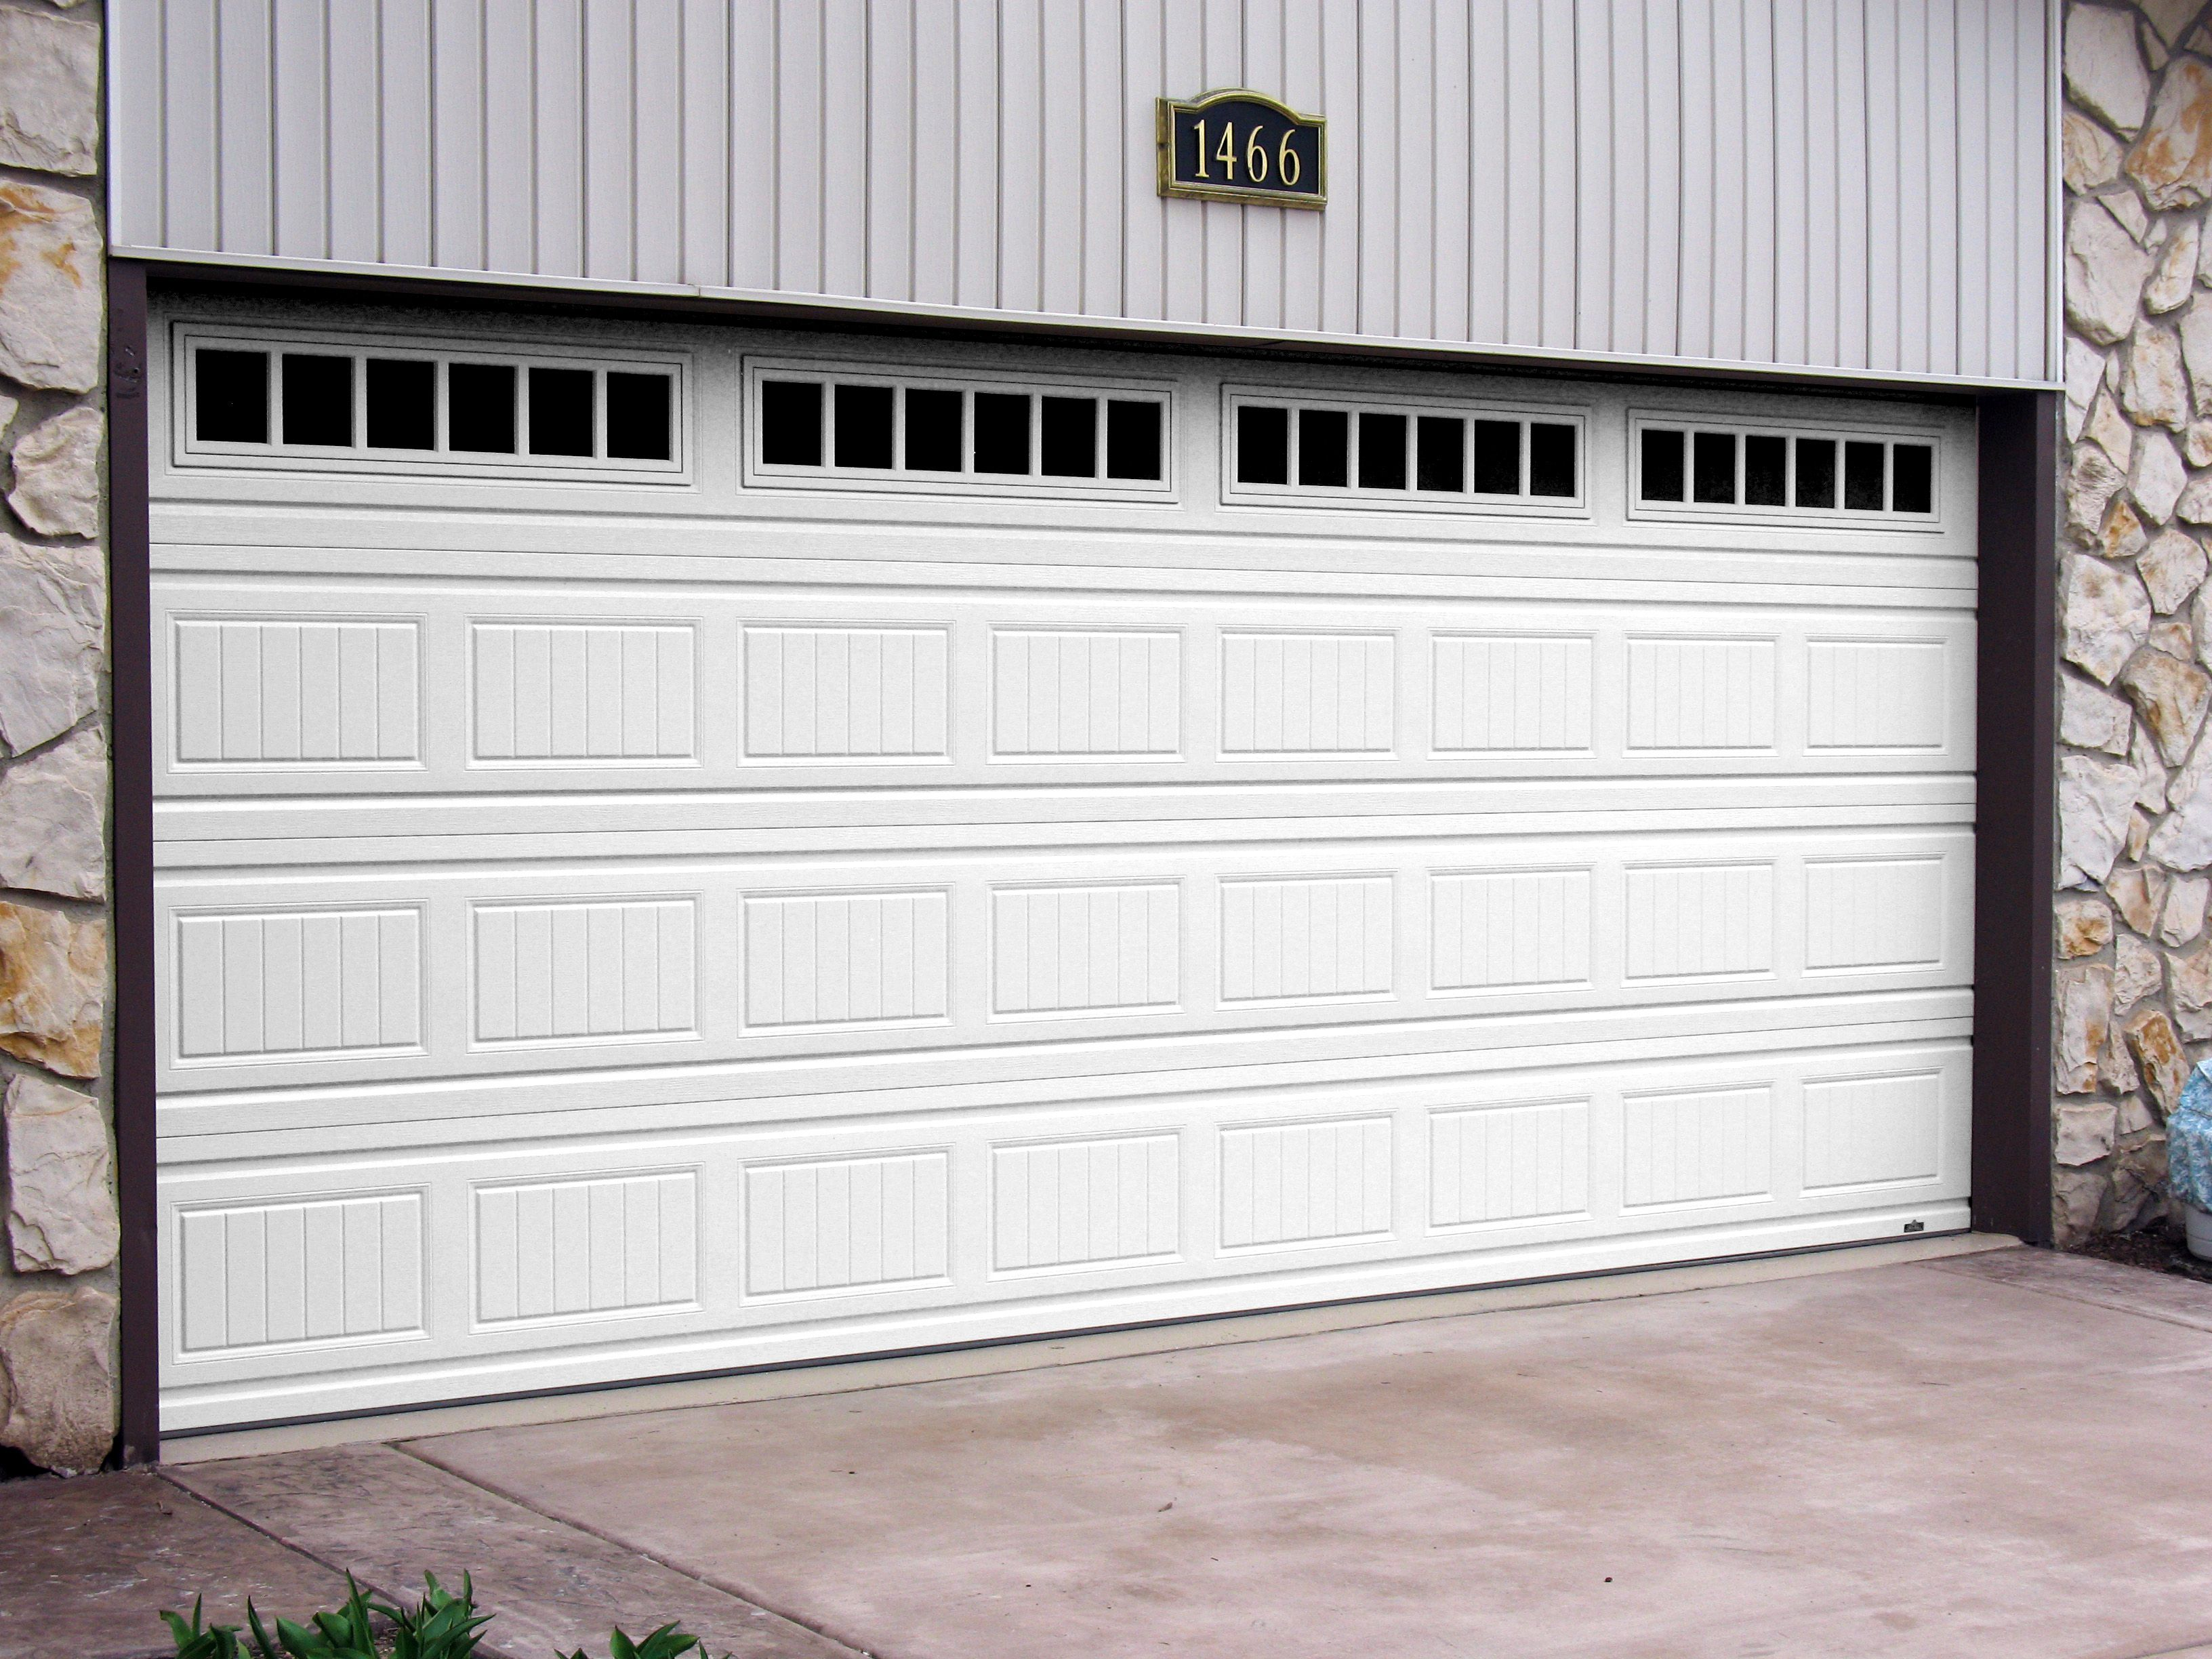 g door reviews photos rare concept phoenix garageoors doors garage